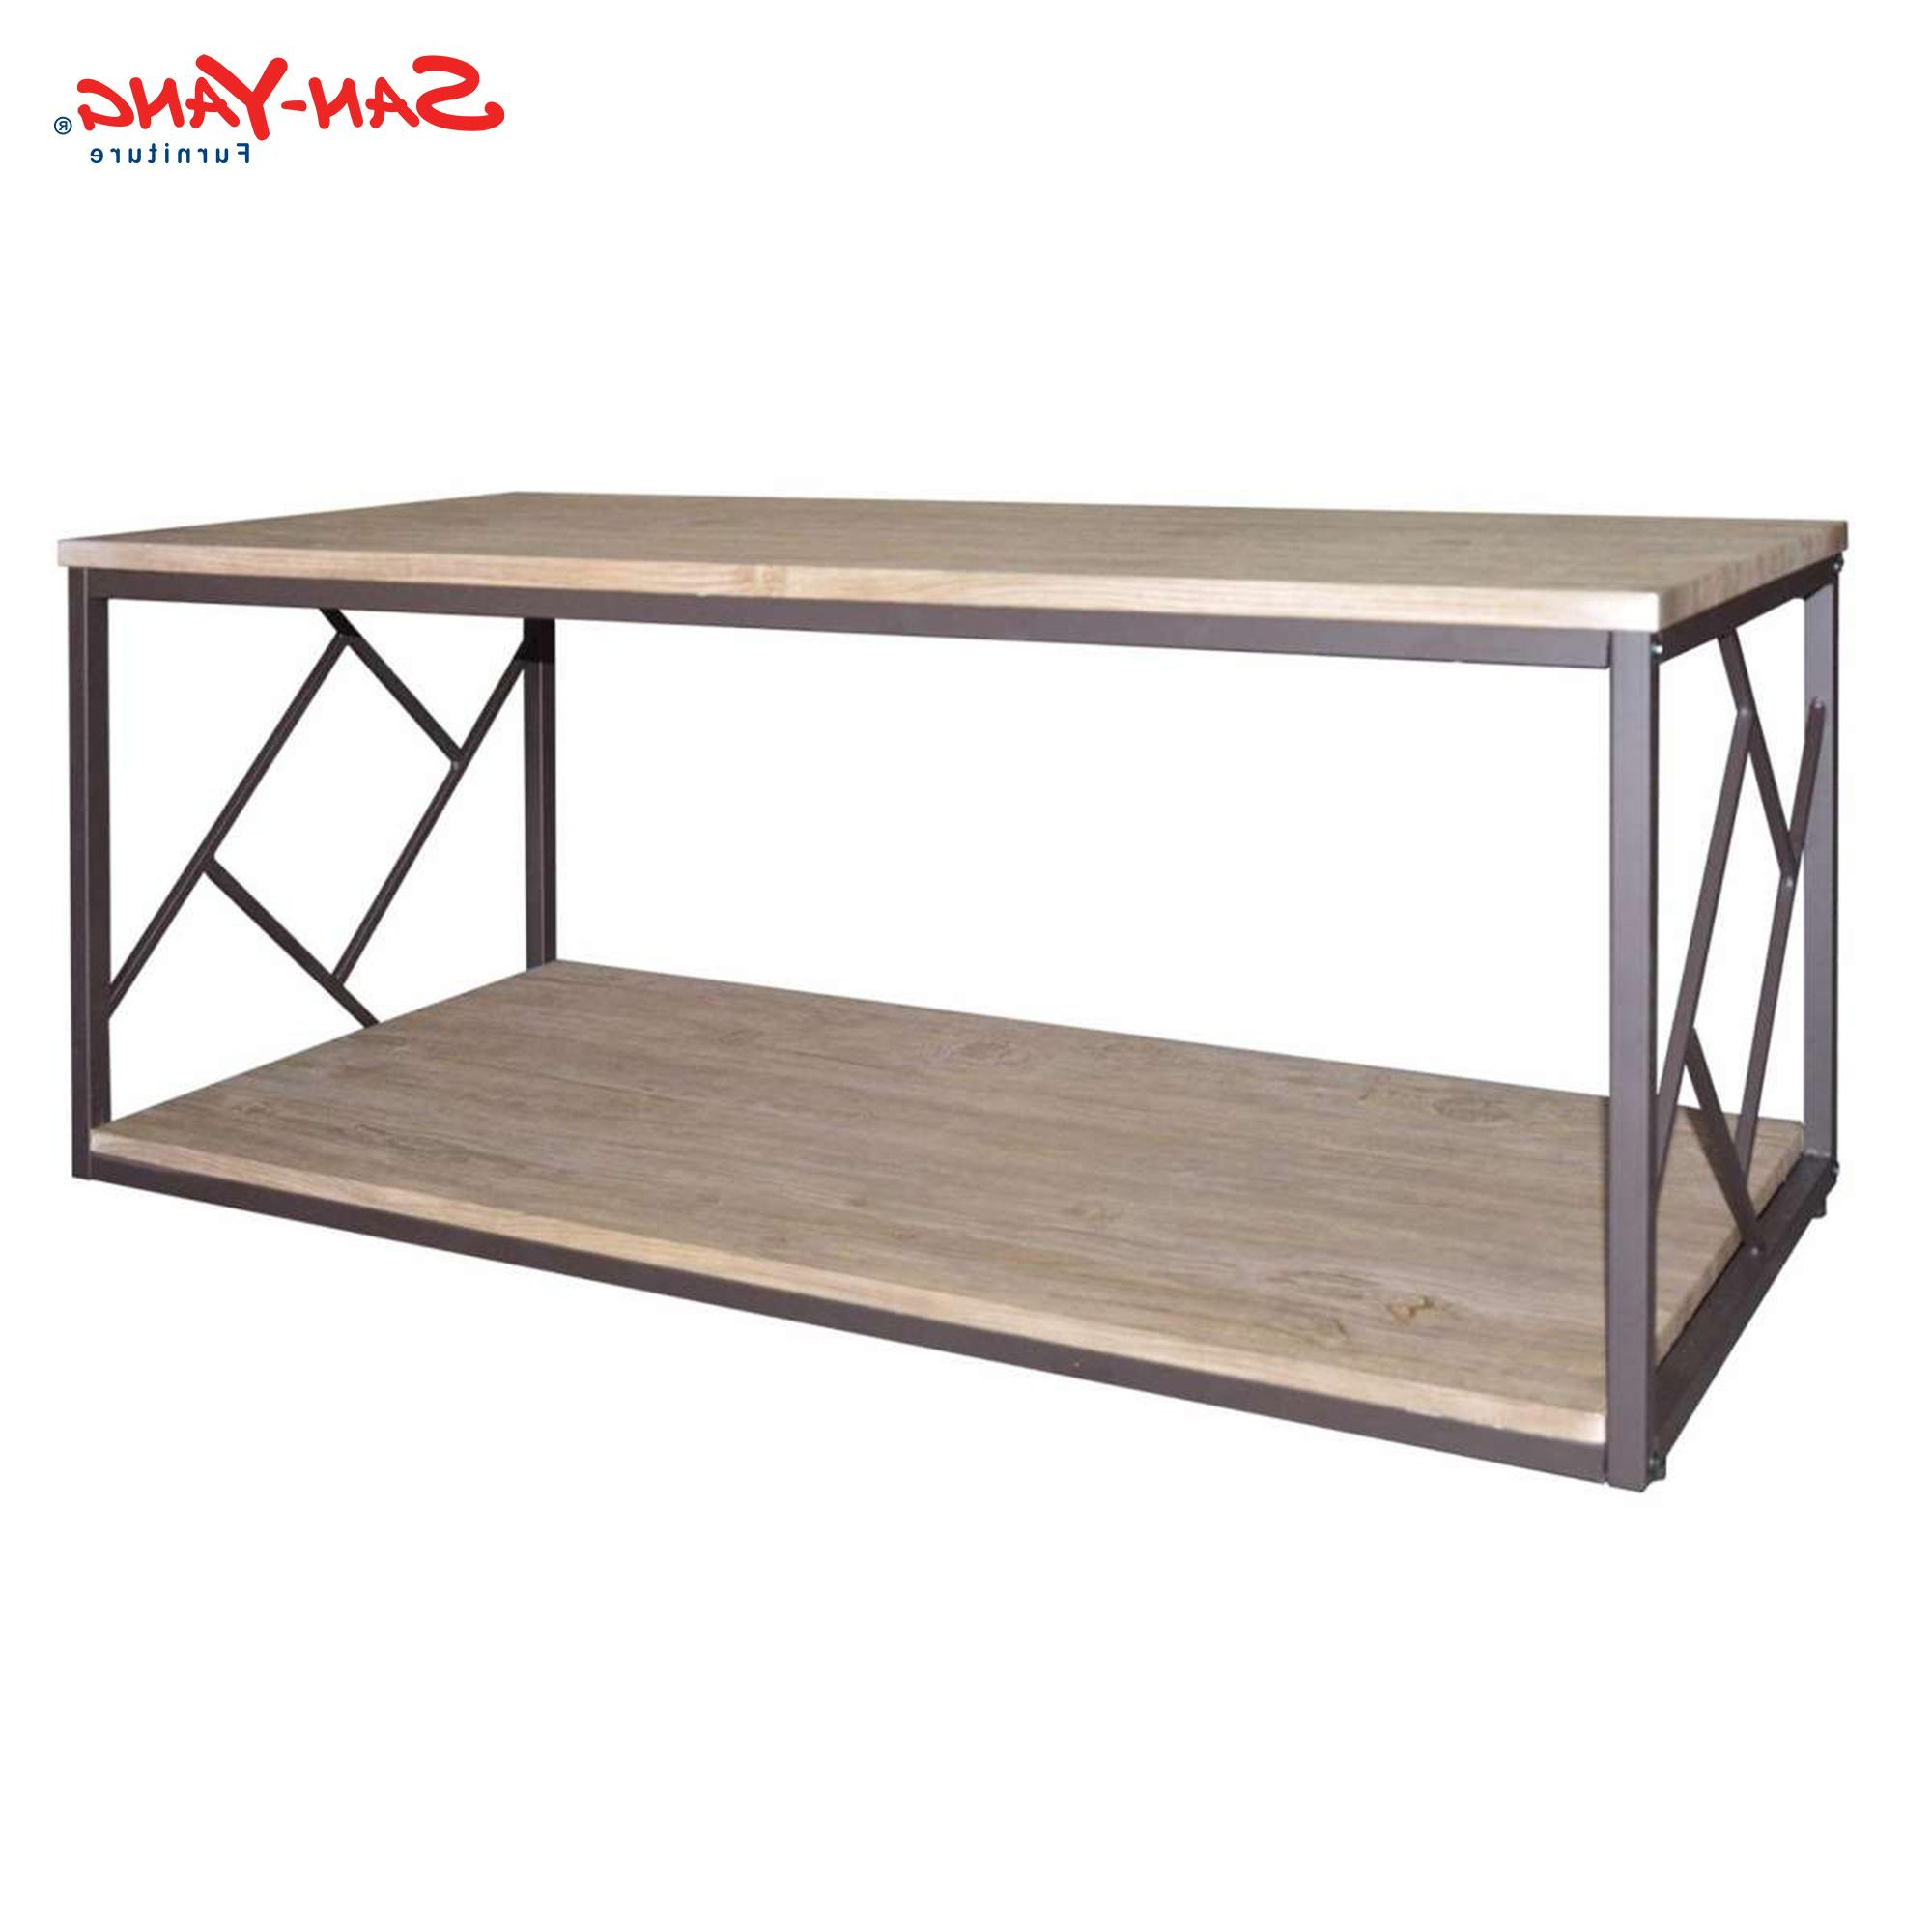 Table For Sale – Home Tables Prices, Brands & Review In Philippines Pertaining To Layered Wood Small Square Console Tables (View 12 of 20)